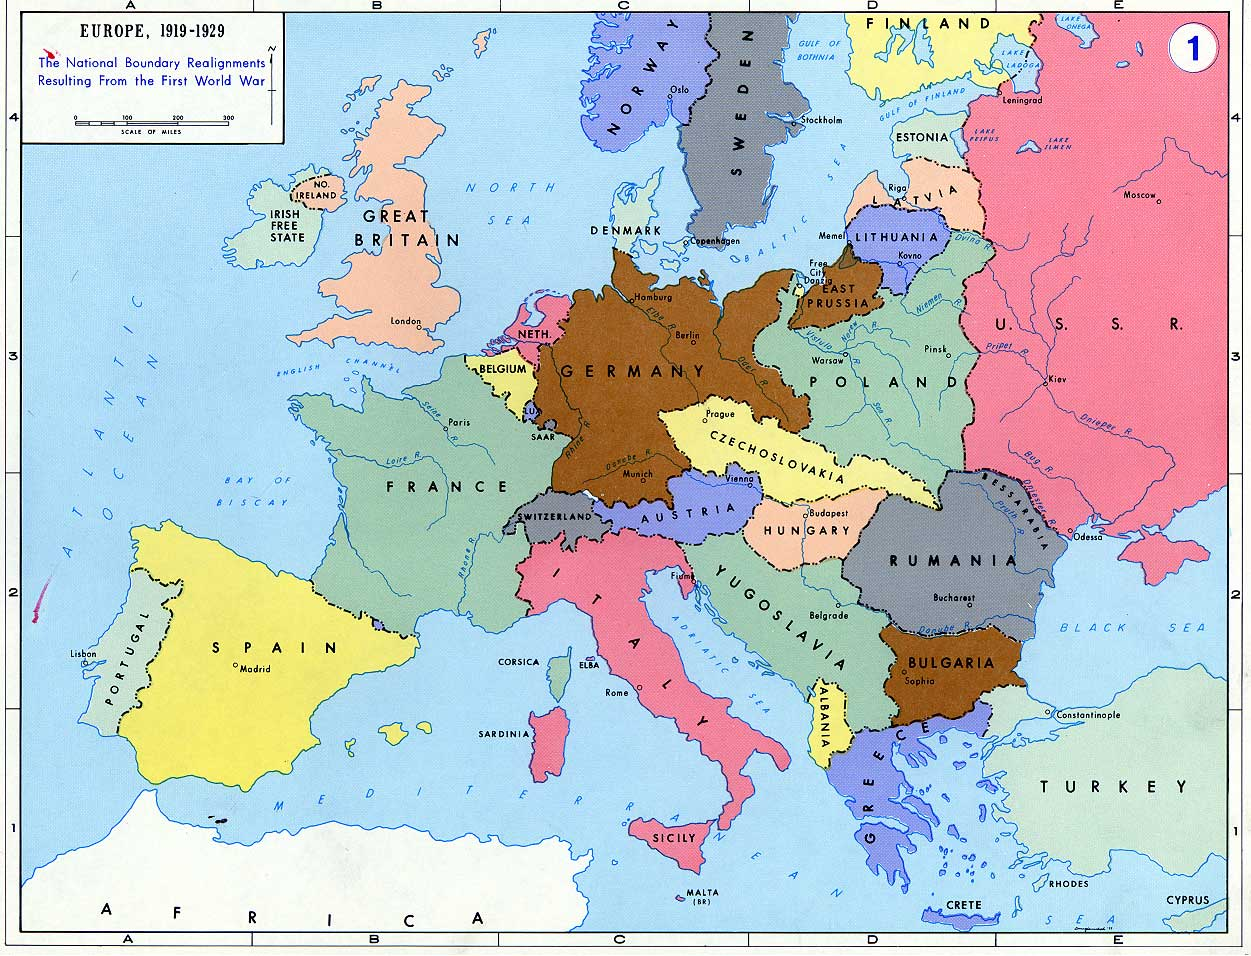 60 Europe In World War 1 Map. Map. Get Free Image About World Maps